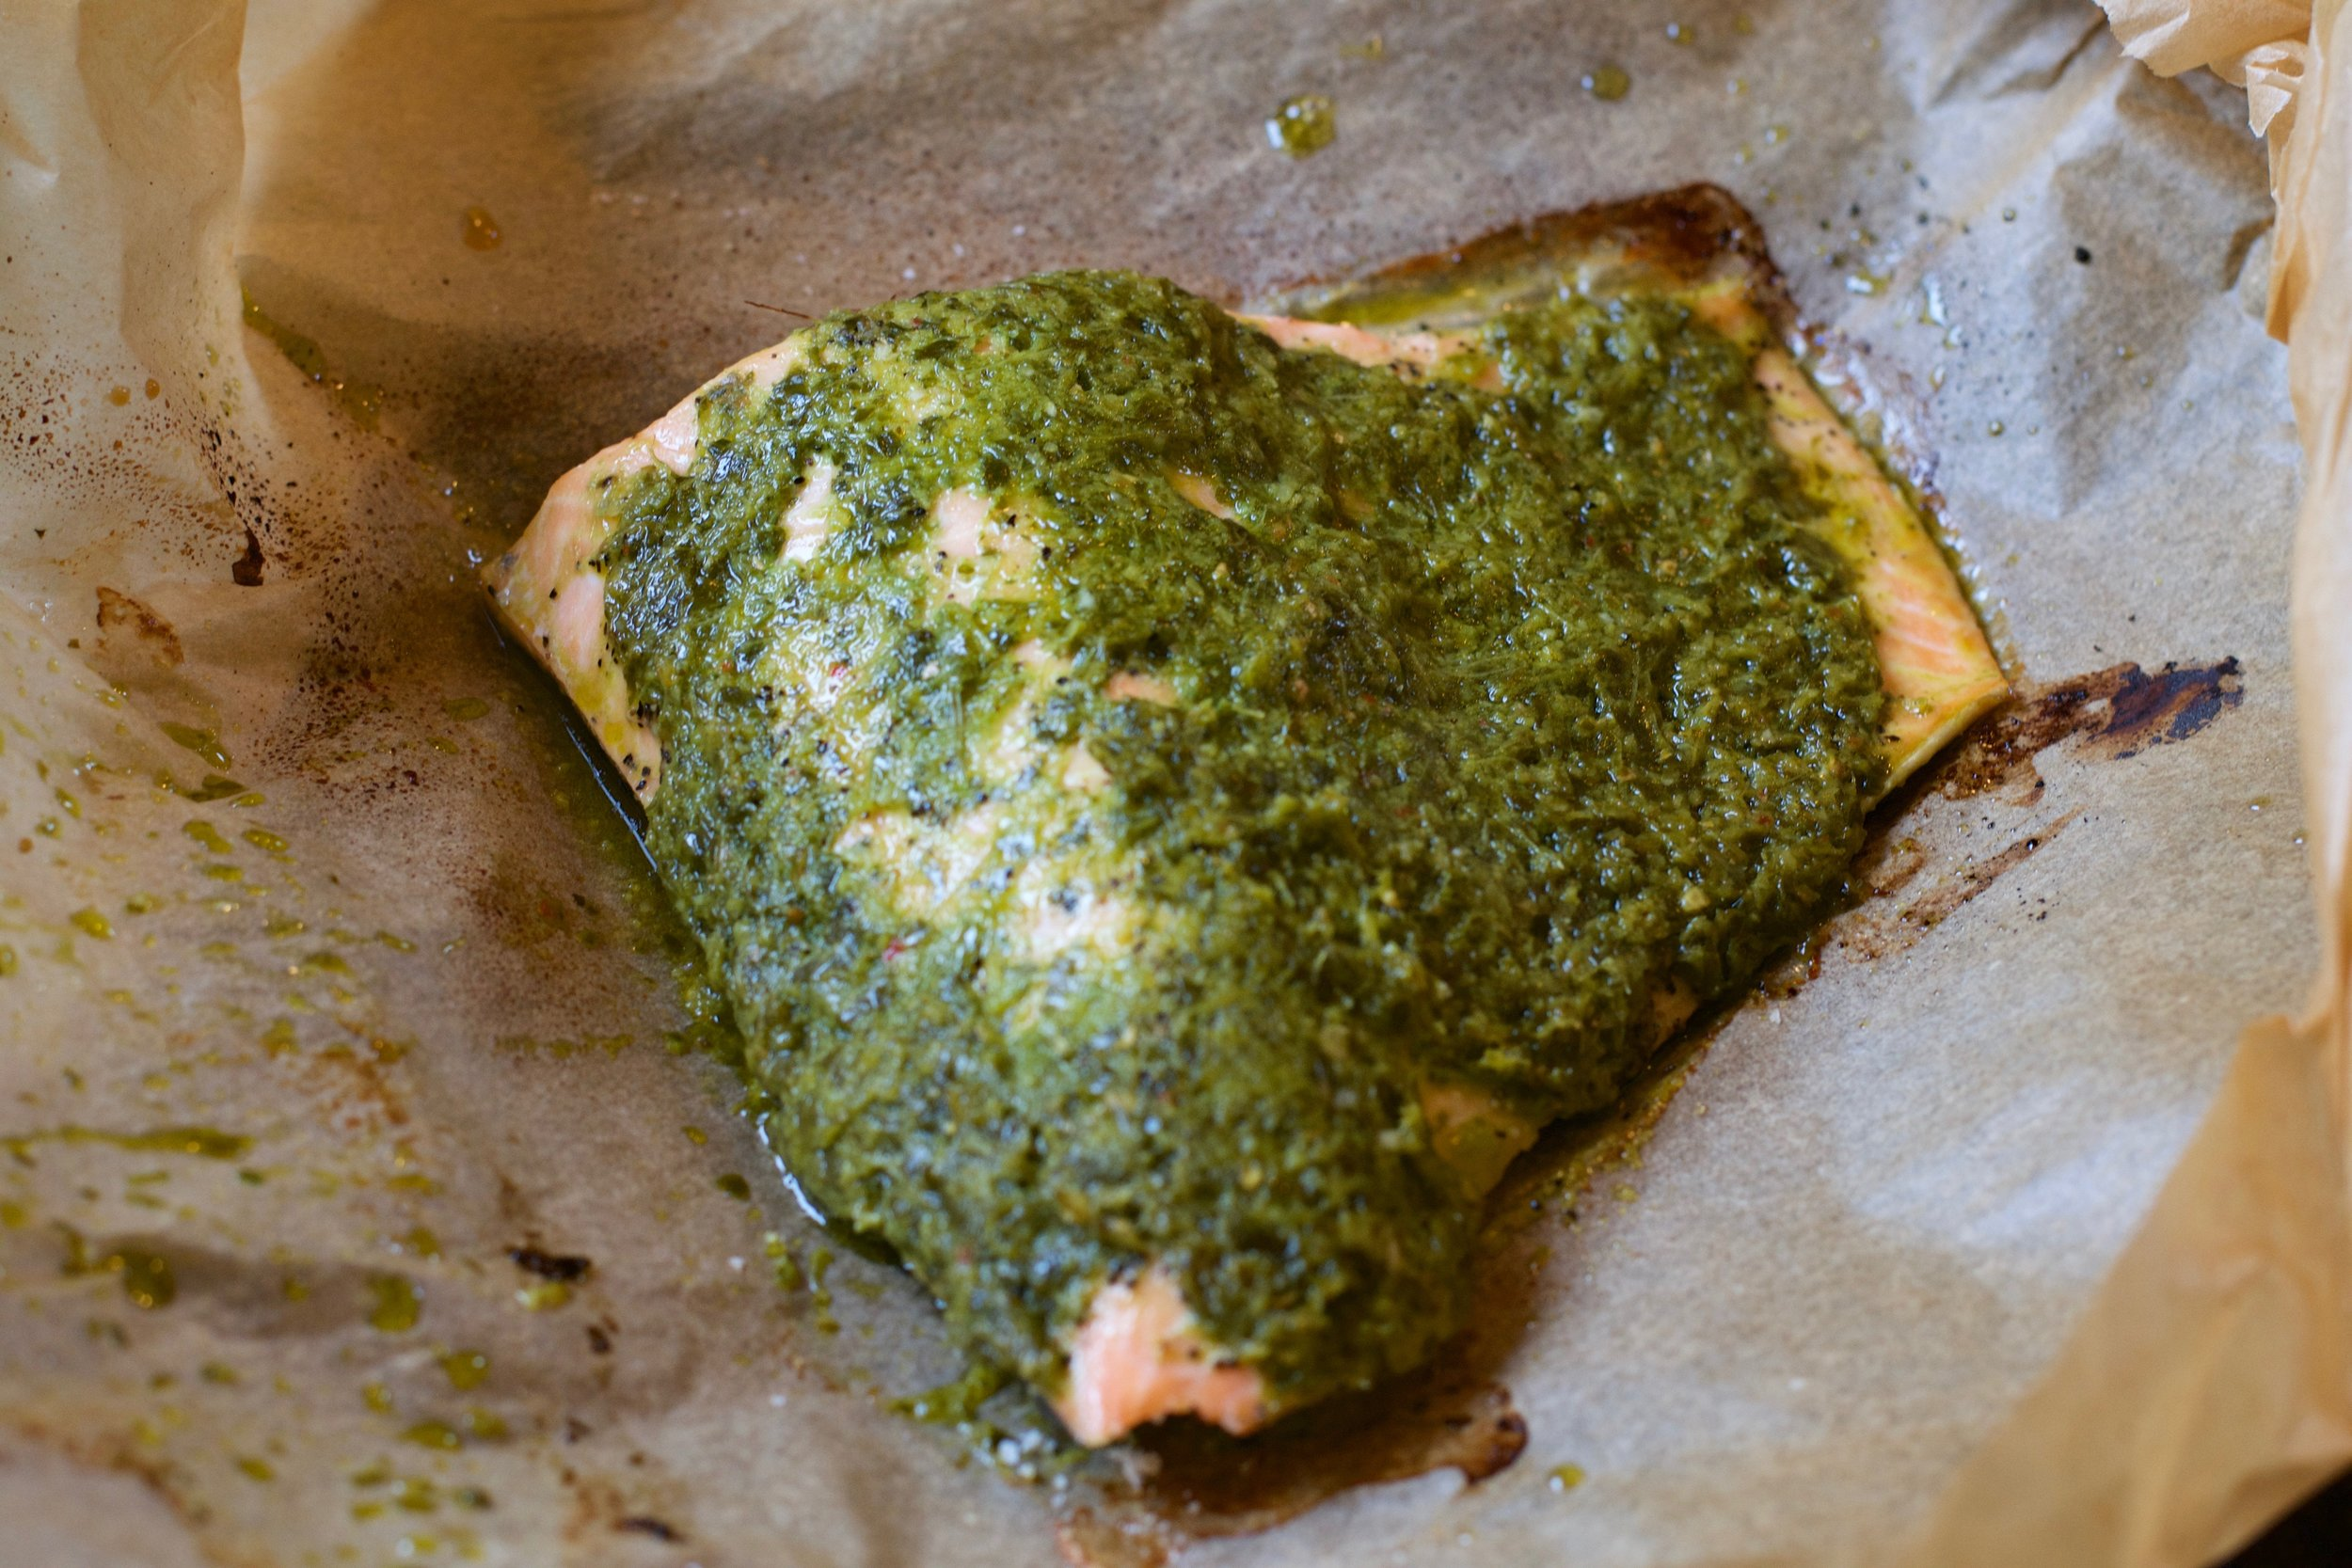 Baked Salmon with Chermoulah